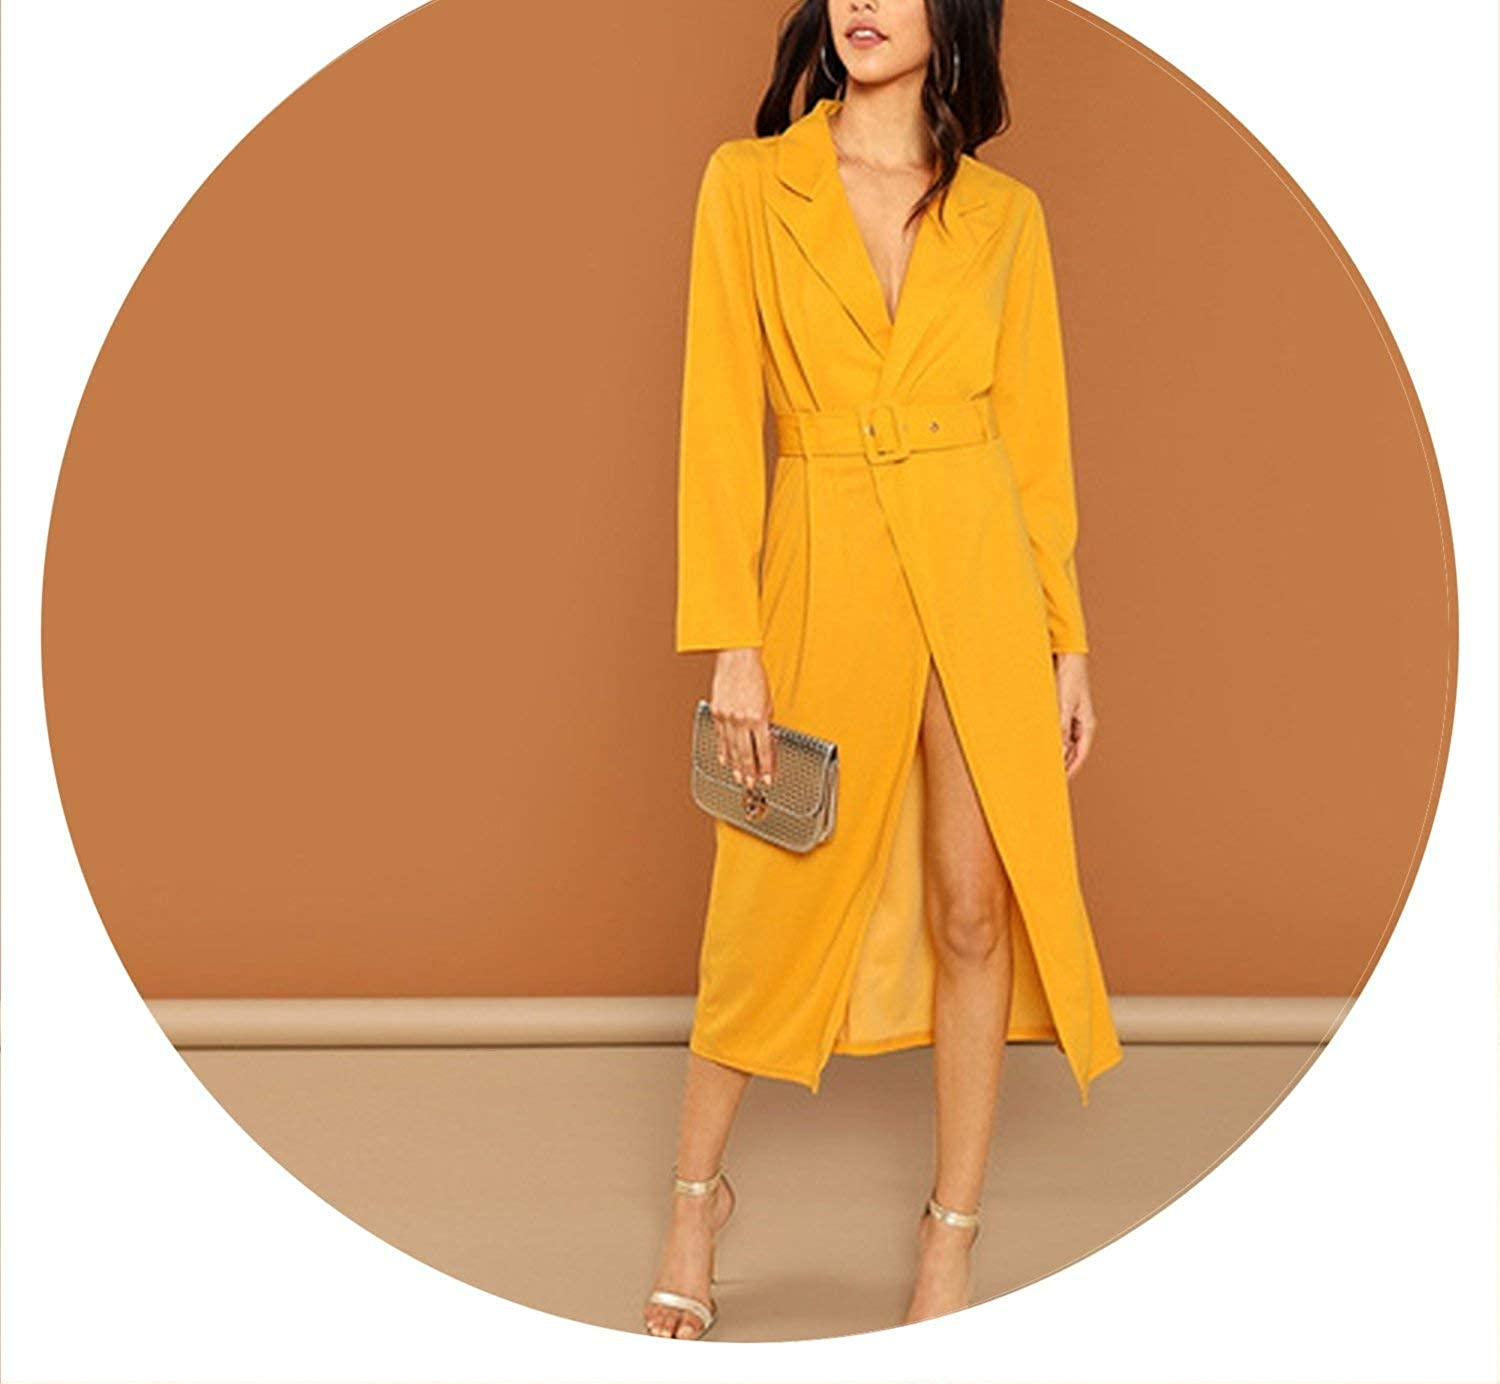 Brave pinkmary Streetwear Weekend Casual Ginger Waist Belted Wrap Notched Neck Asymmetrical Maxi Dress Elegant Women Dresses